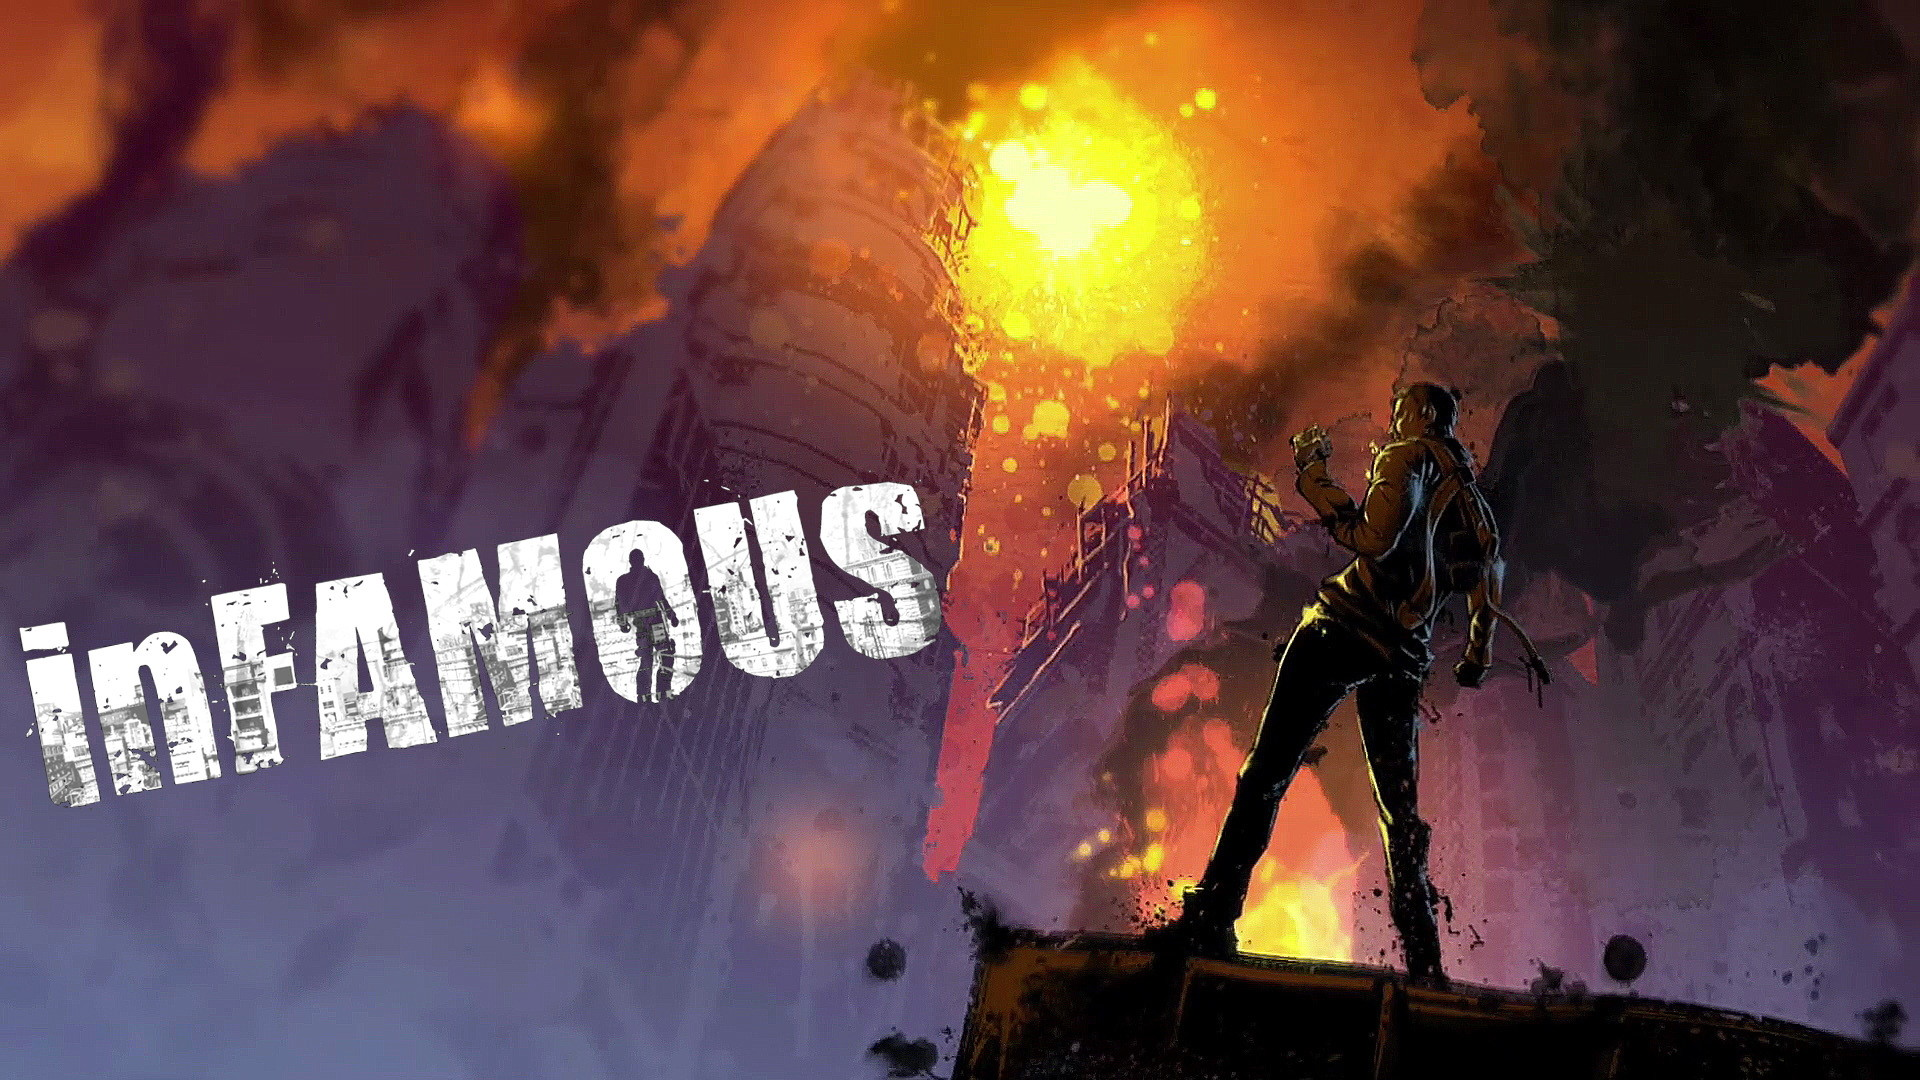 1920x1080 Content Test 2. inFamous - Art Wallpapers